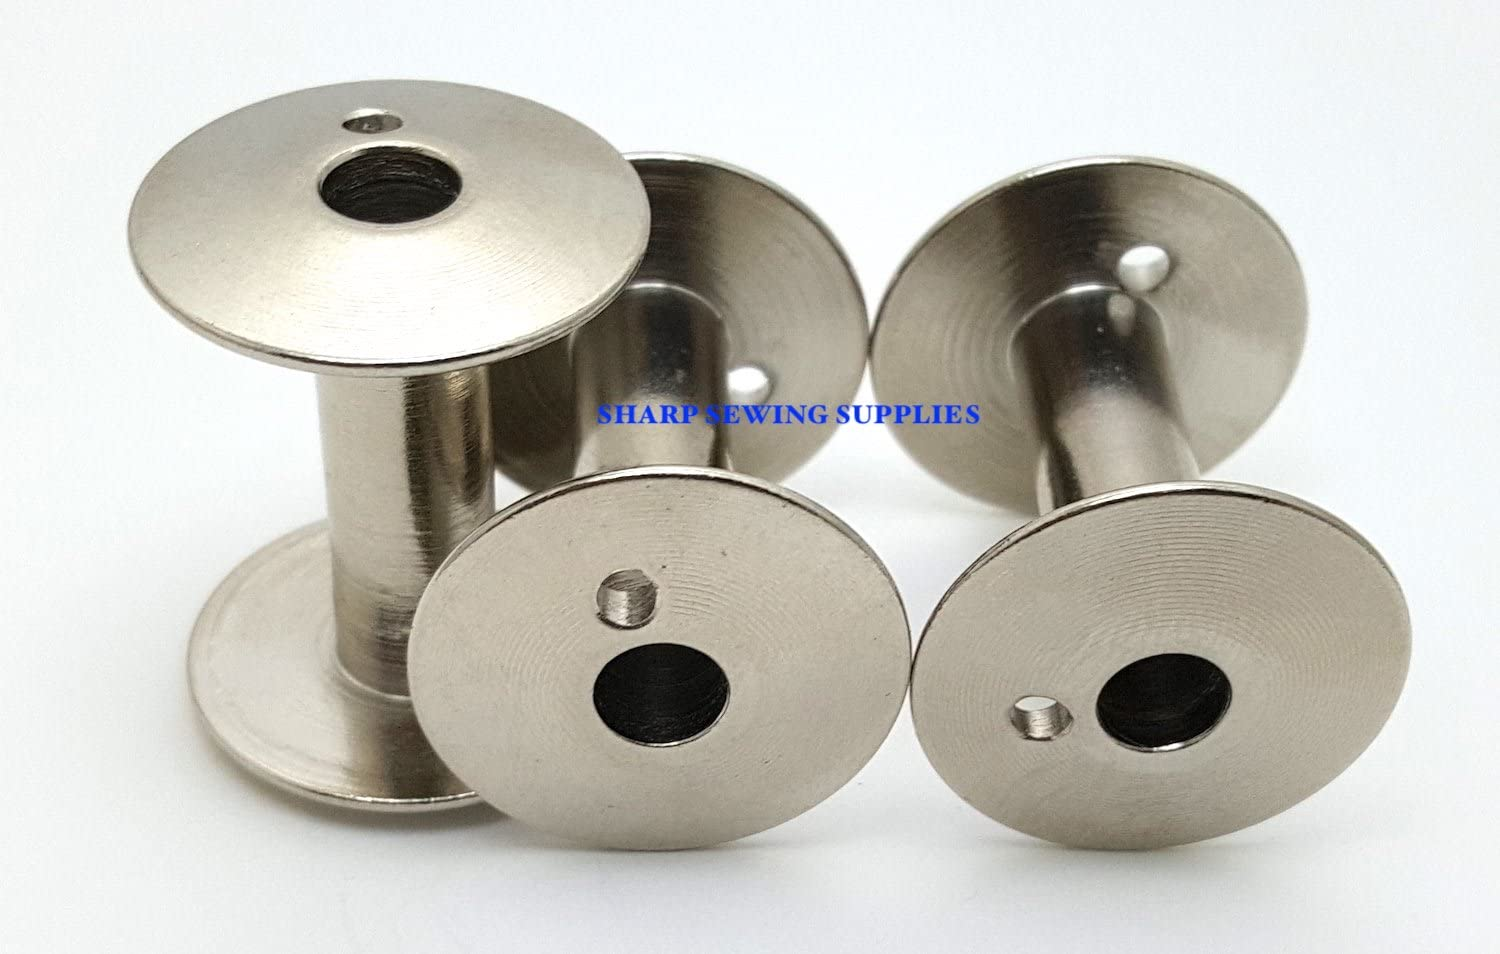 3 pcs ~ Bobbin #11910 Fits Artisan TRO-3000 / Juki TSC-411 / Adler 105 Sewing Machine